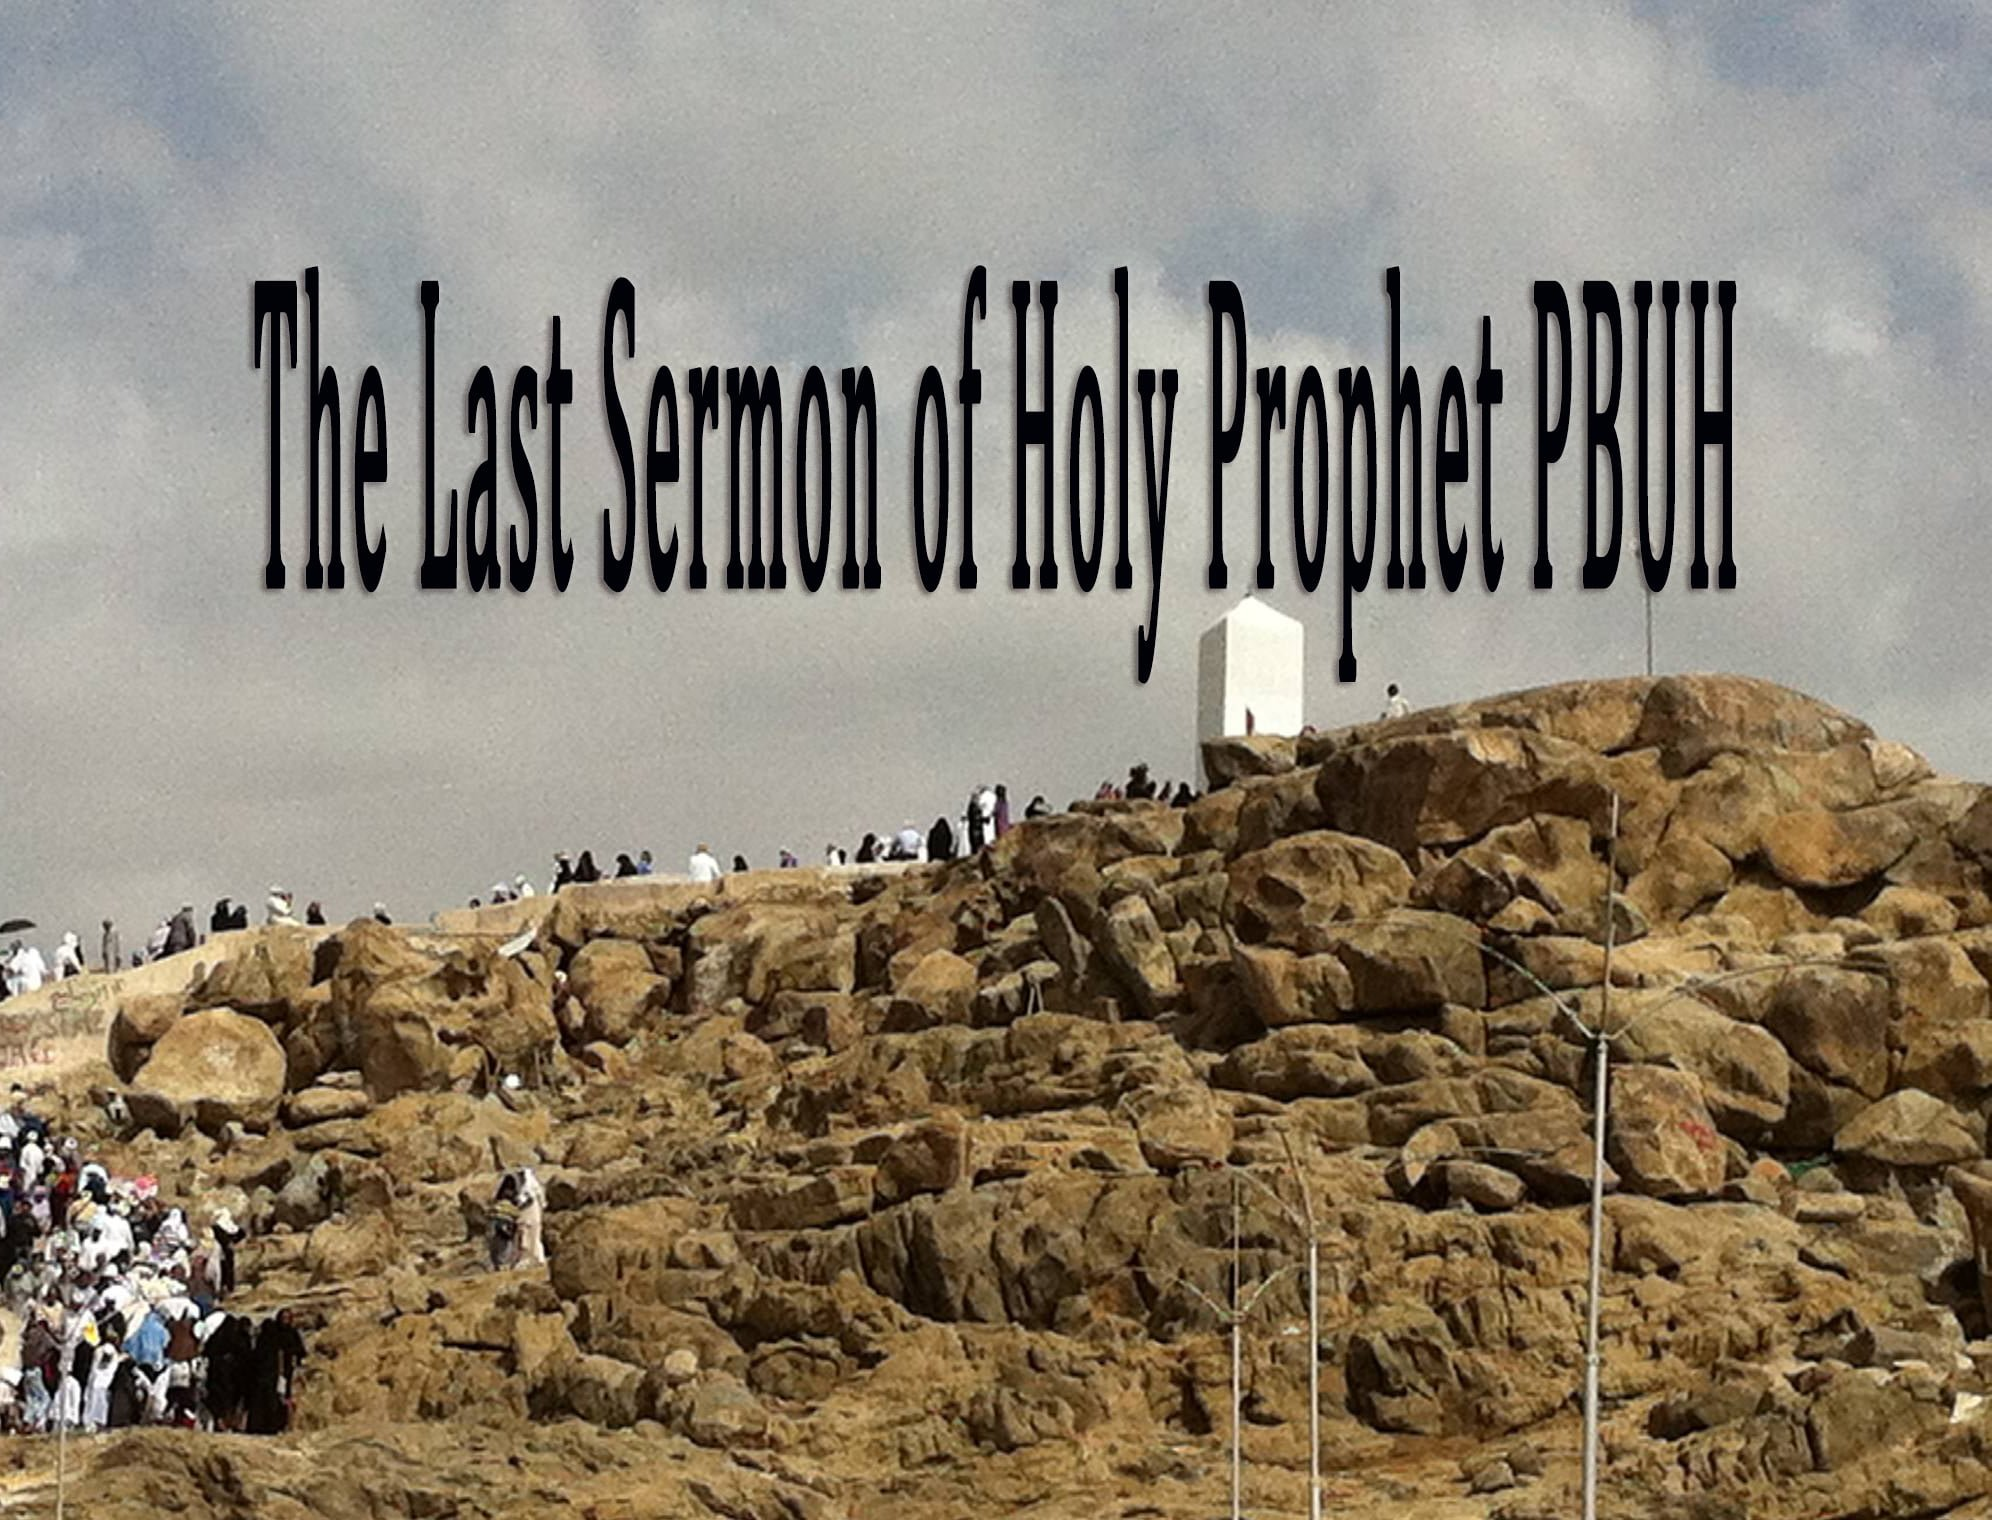 the last sermon of the holy The tragedy of christ in turning our attention to holy week and  outraged pharisees plot to eliminate jesus/ mt of olives sermon holy  the last supper / agony.